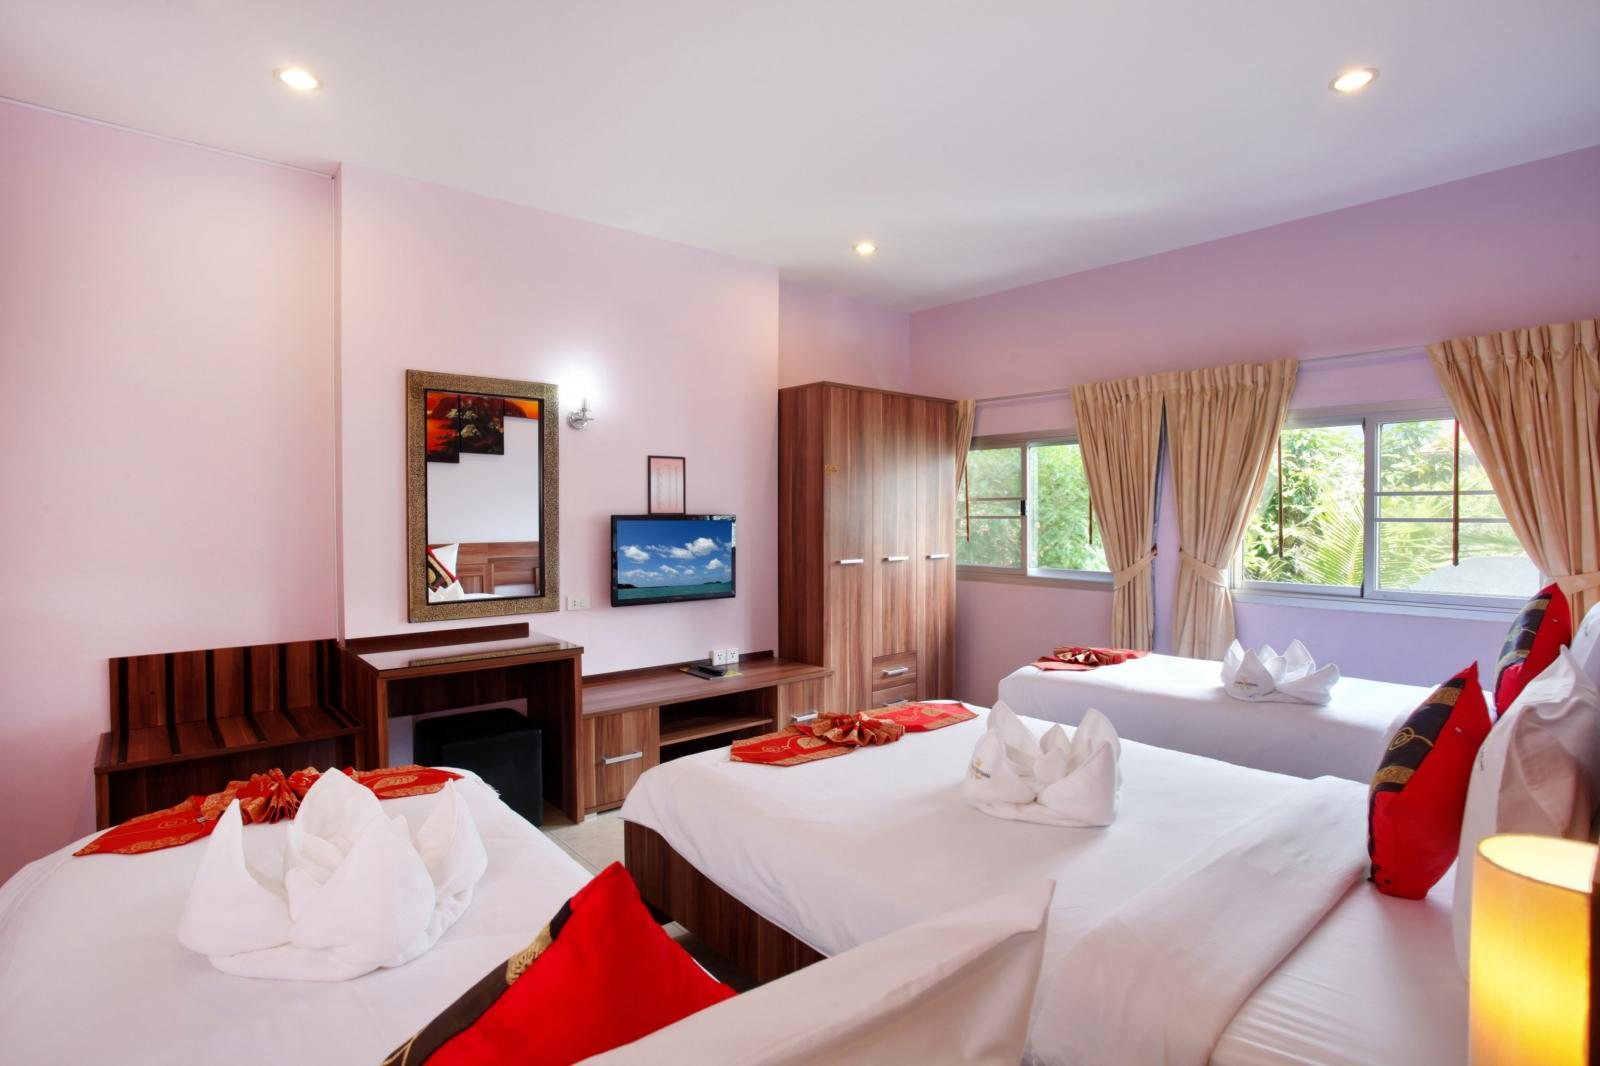 Patong Beach Hotel Contact Number